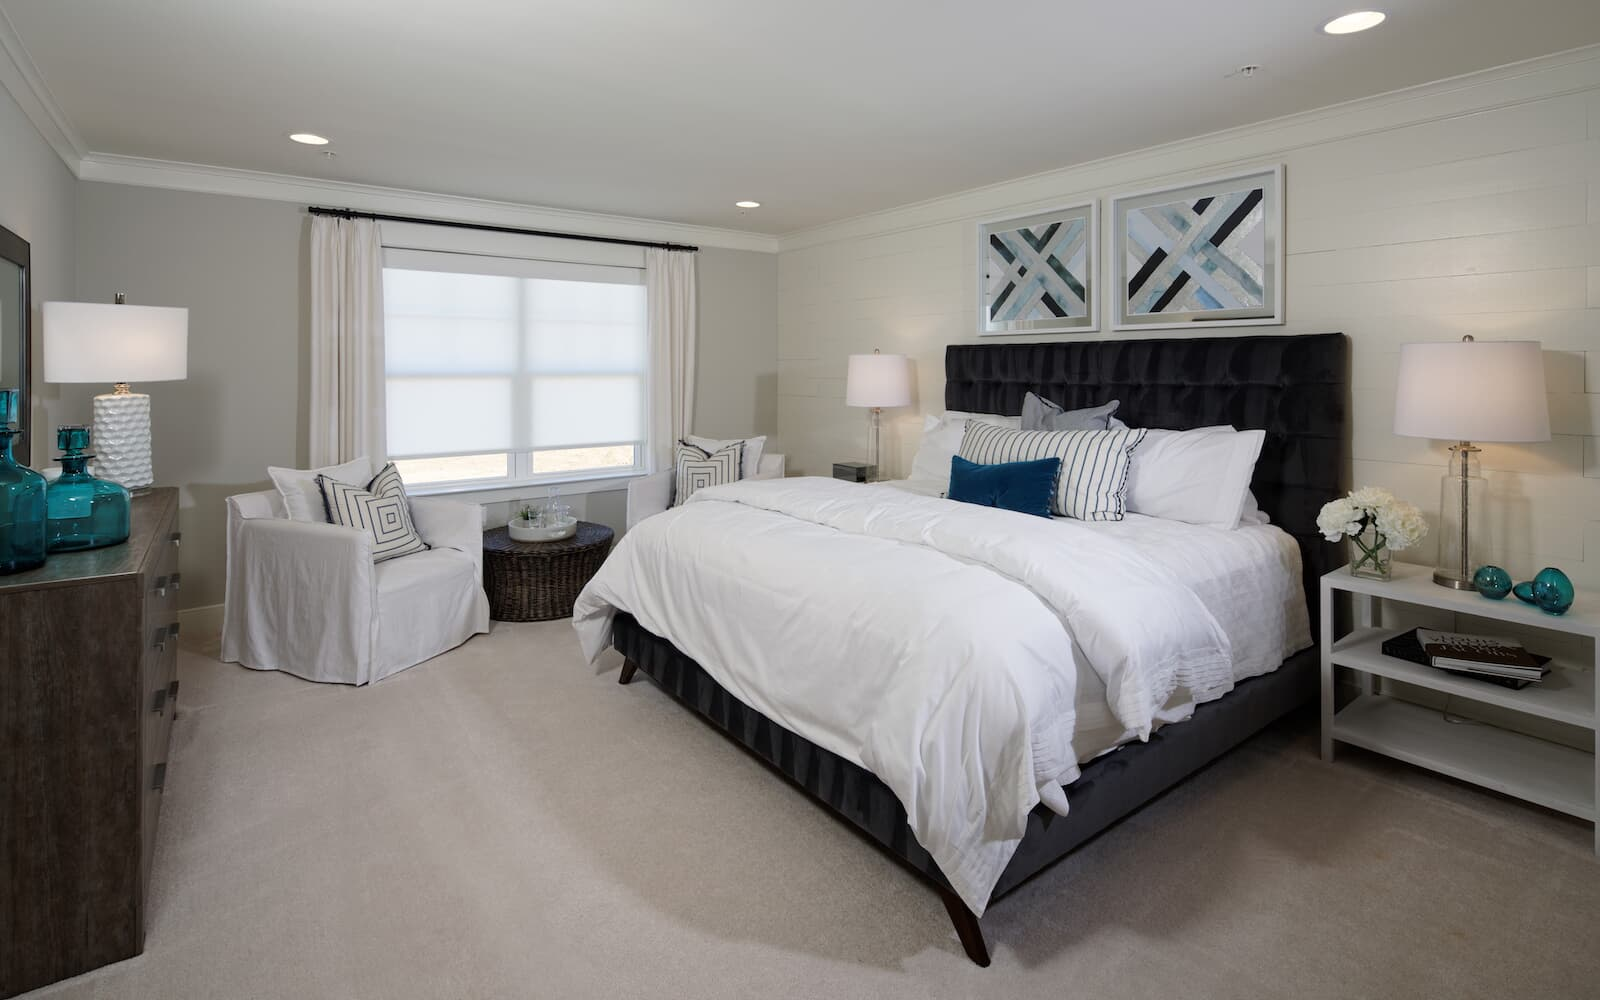 Aurora-bedroom-townhomes-silver-spring-md-bradfords-landing-brookfield-residential